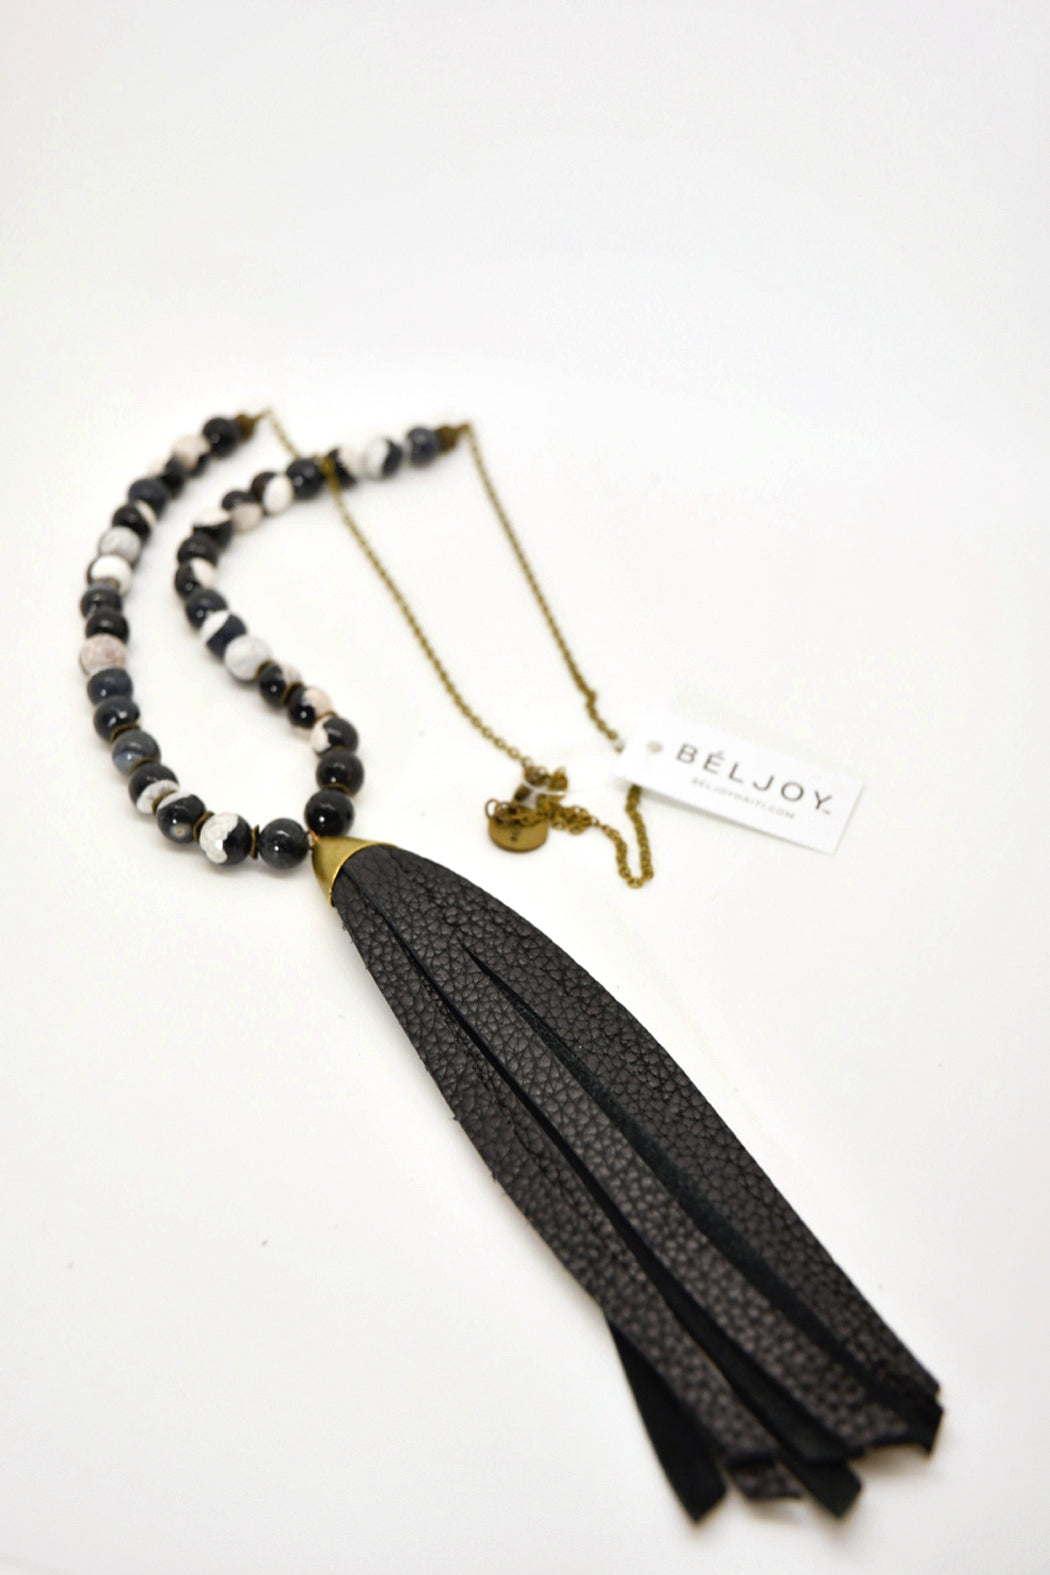 Beljoy Krista Necklace